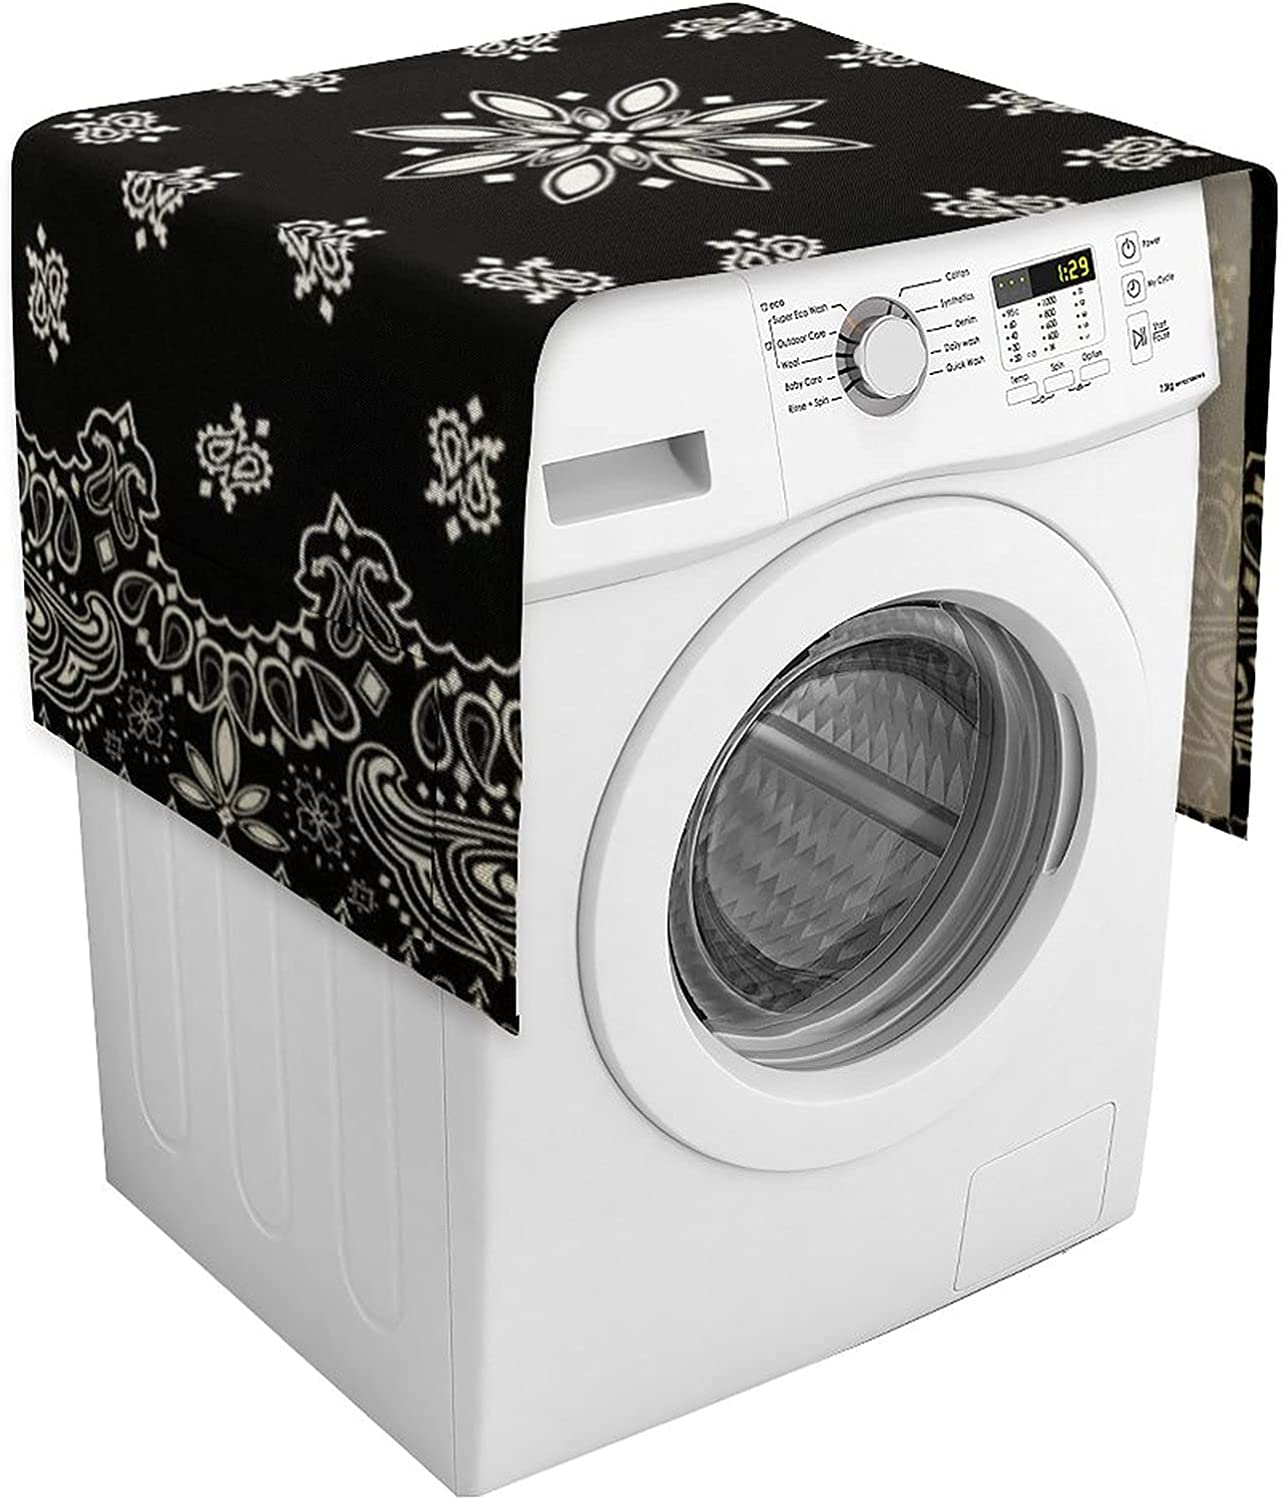 Multi-Purpose Washing Machine Covers Washer Complete Free Shipping Max 73% OFF Protector Appliance